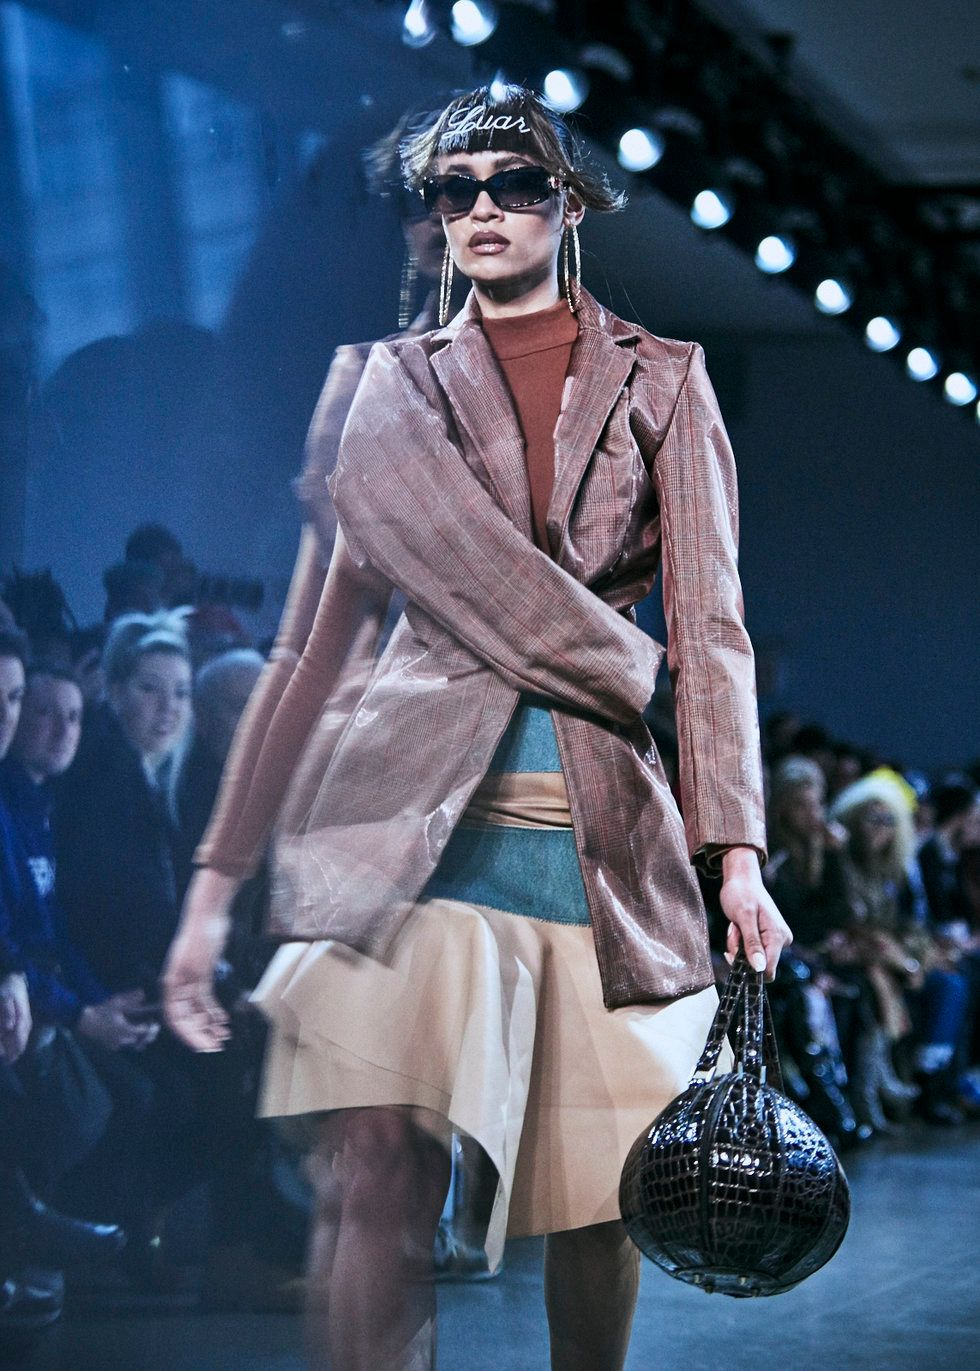 Luar's Brooklyn Dream Girl For Fall 2019 at NYFW - PAPER